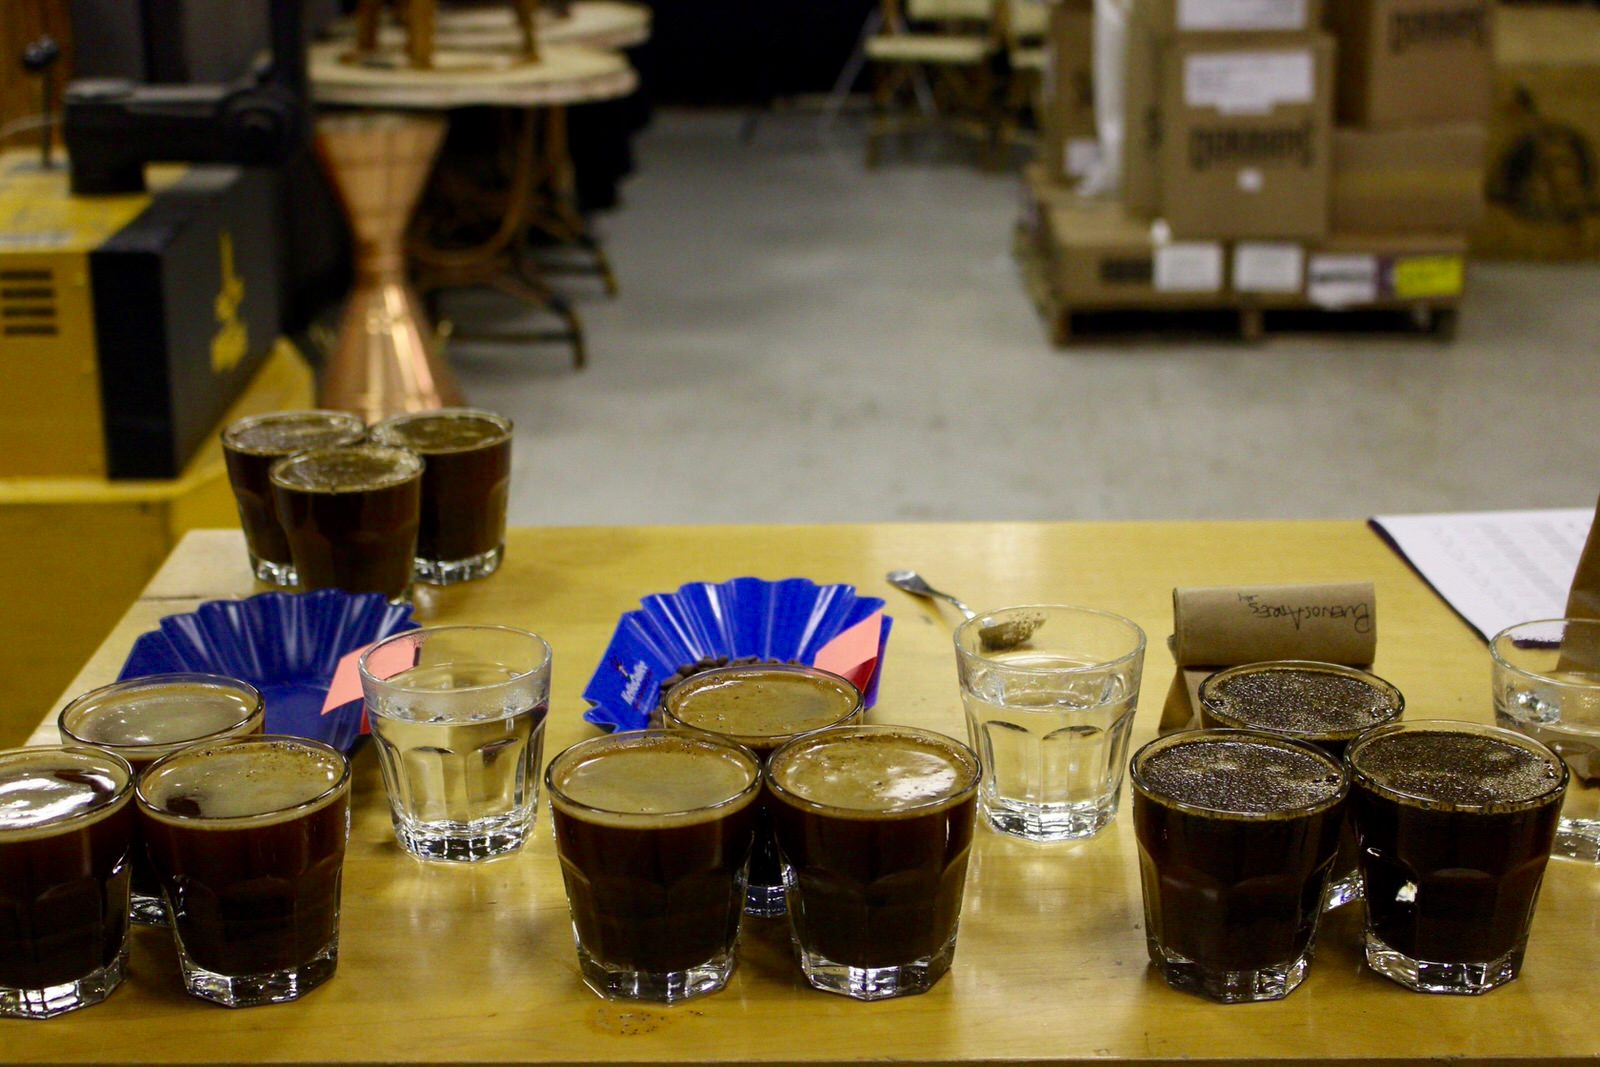 Roastery Tour and cupping with George Howell at George Howell Coffee Roasters in Boston, MA